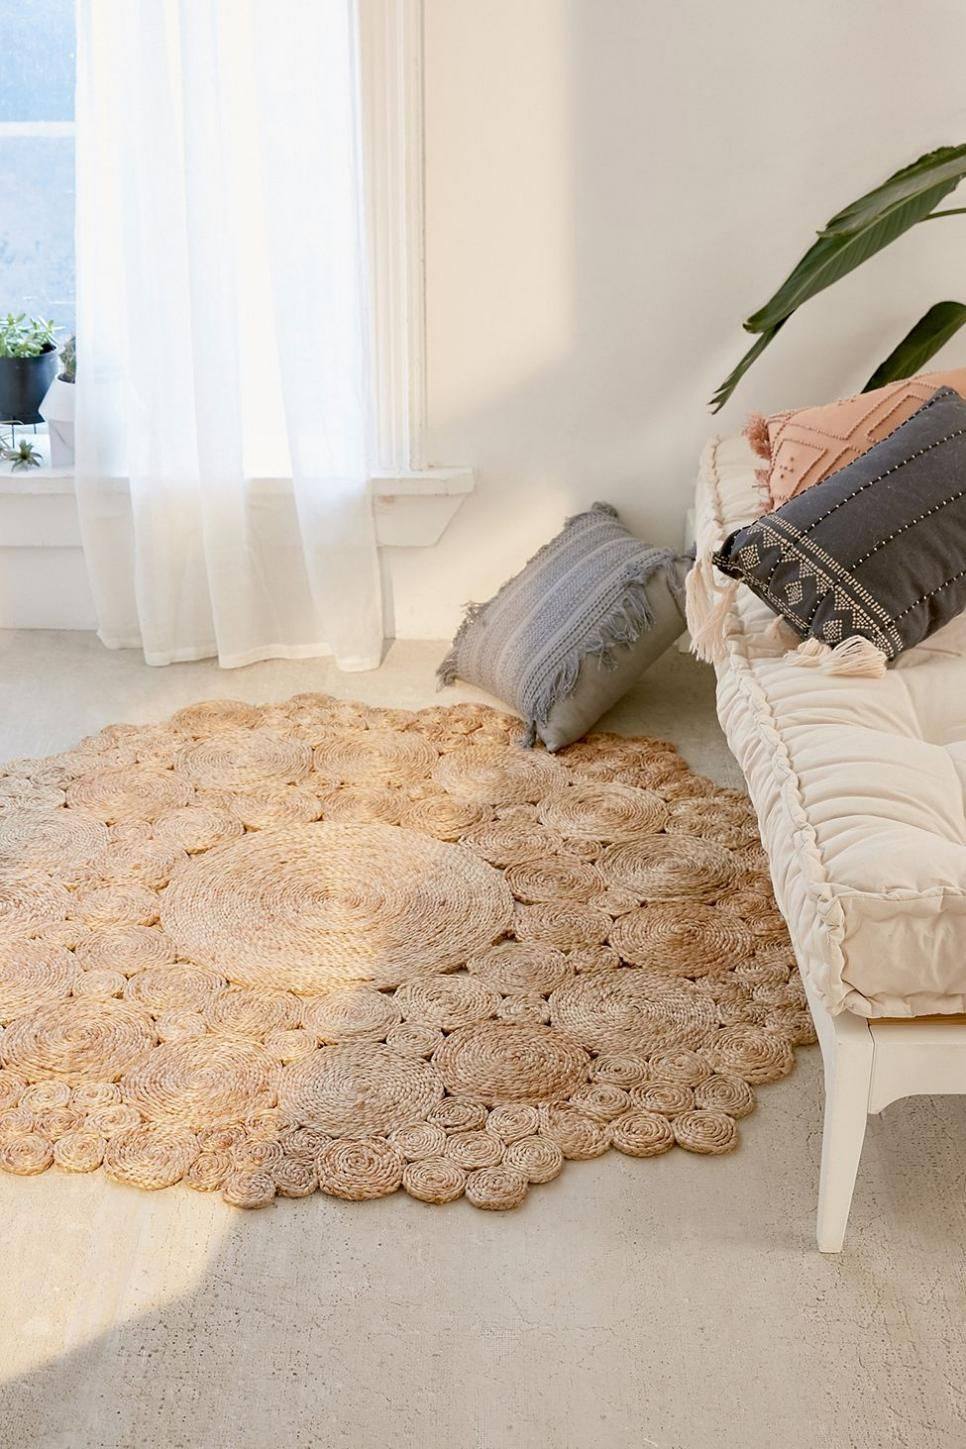 Dorm Room Rugs: Luxe Dorm Room Shopping Guide